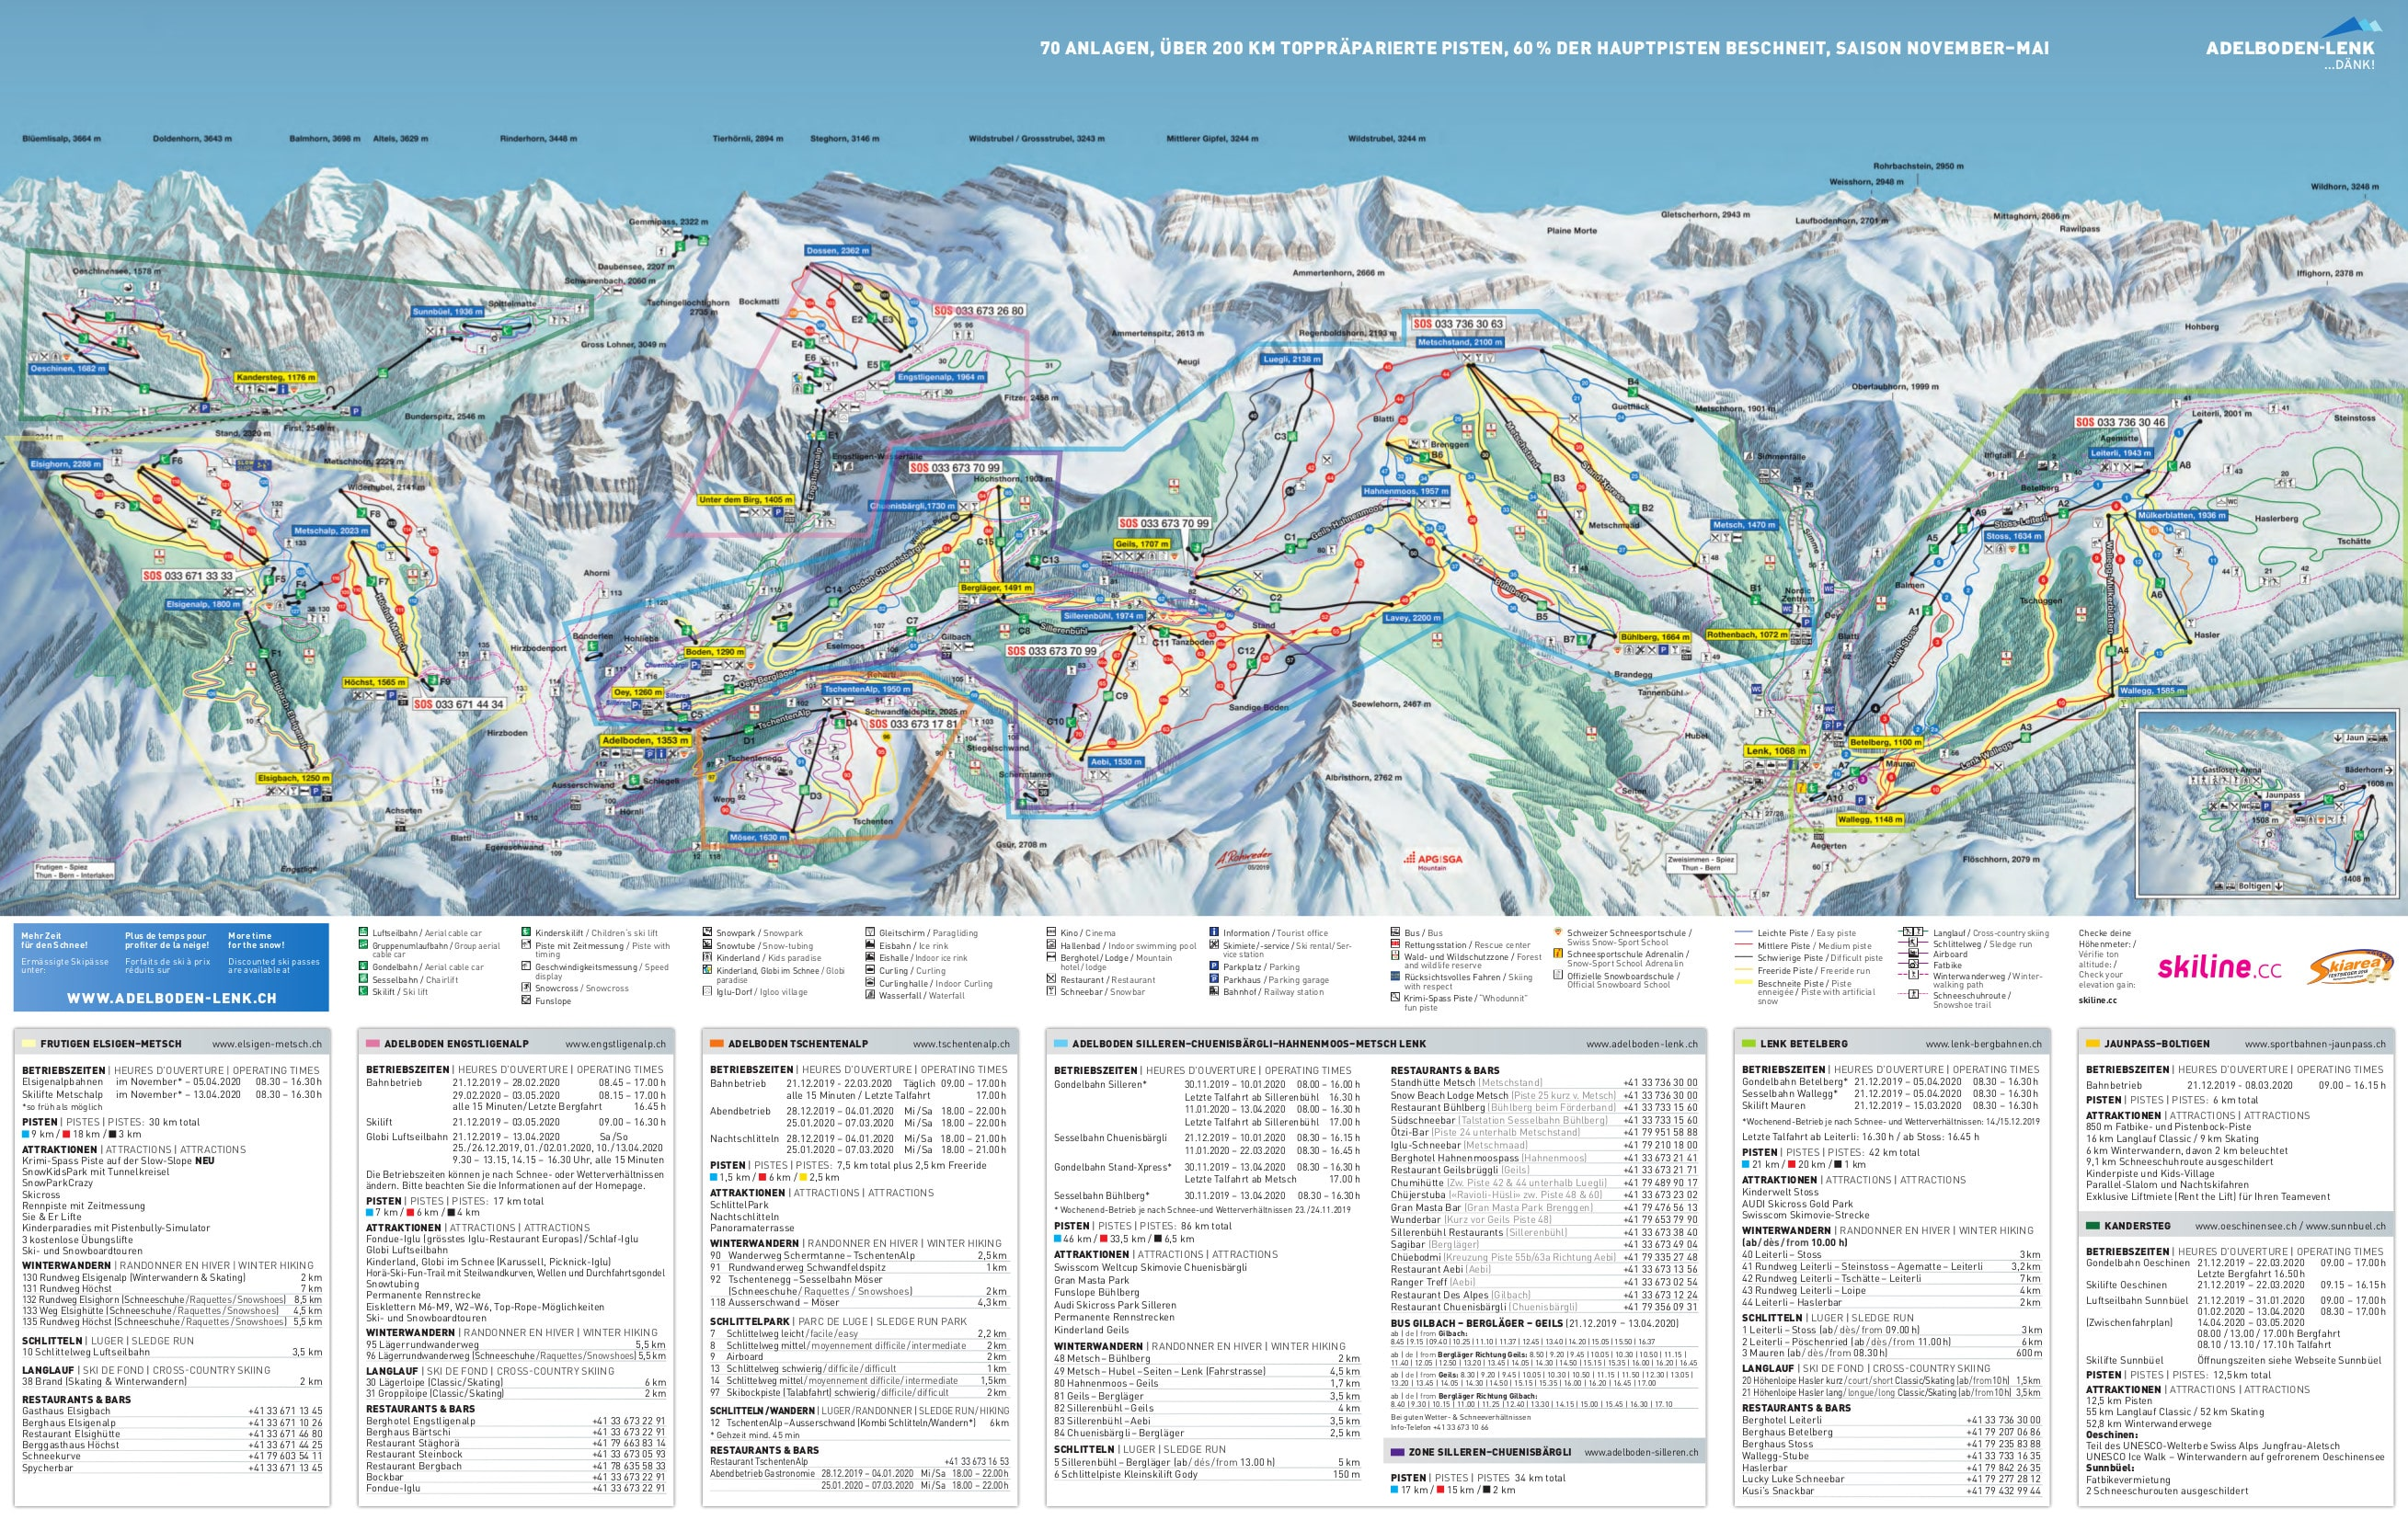 Velika Planina Piste / Trail Map